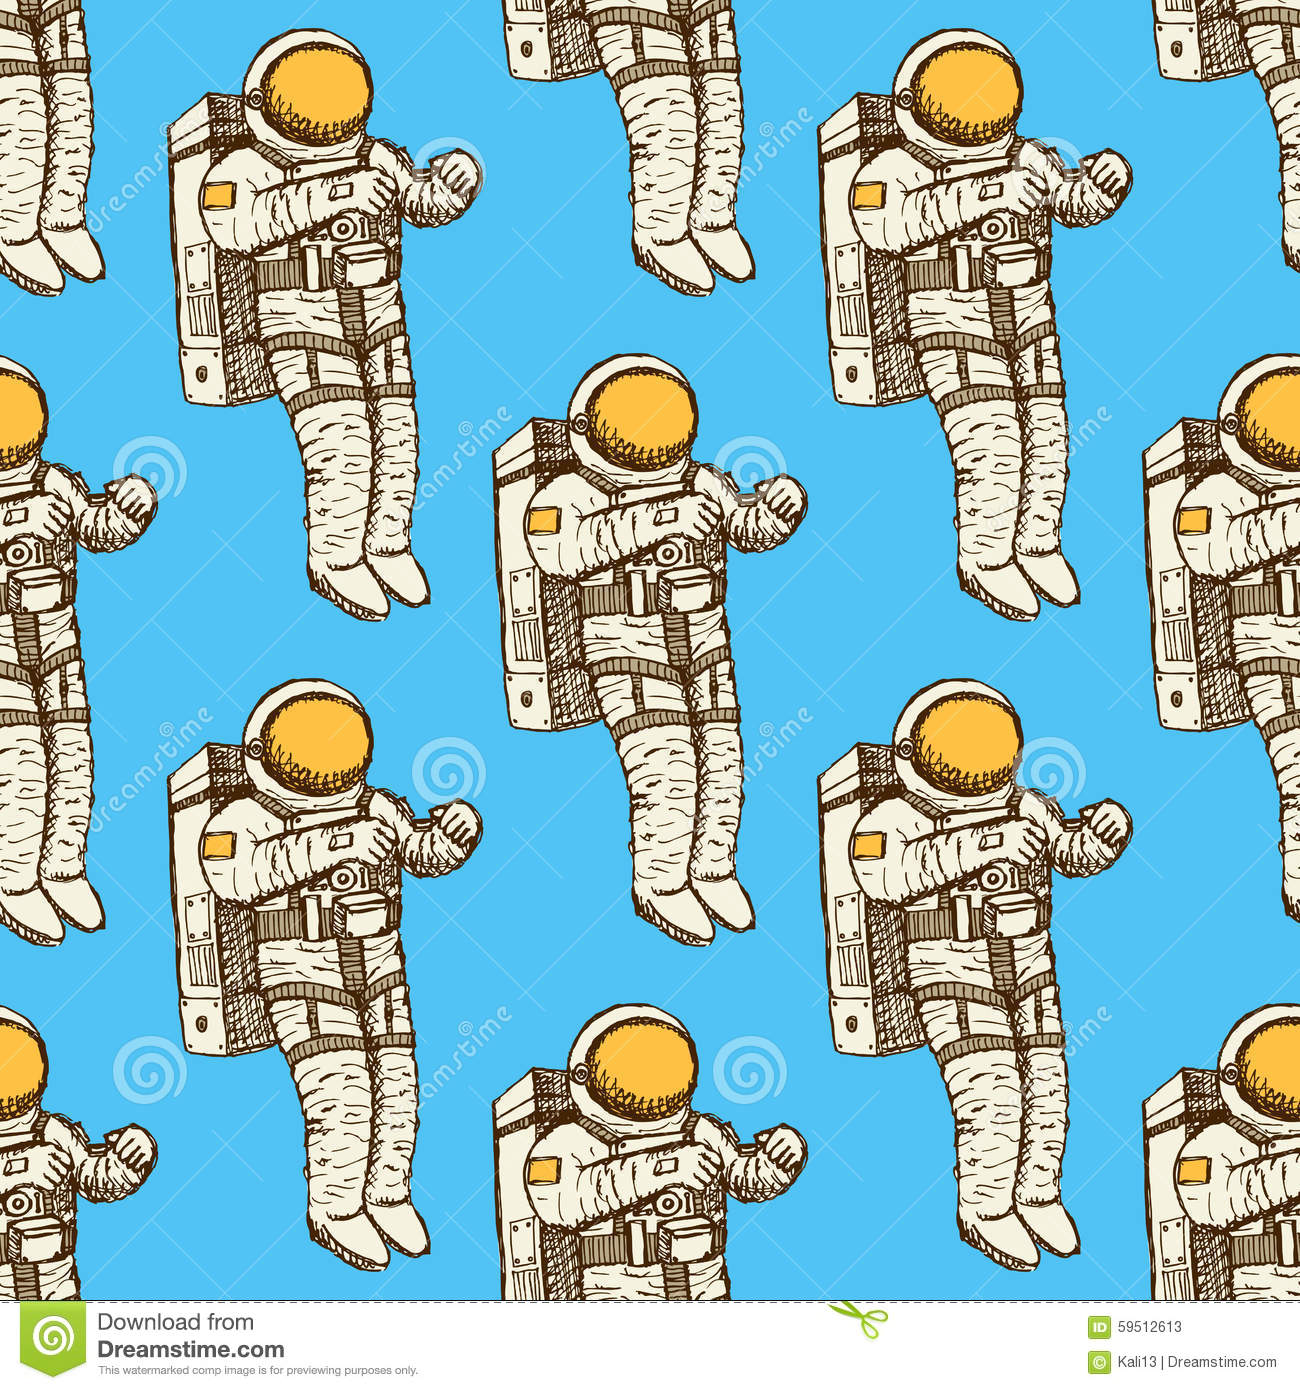 Sketch Astronaut In Vintage Style Royalty Free Illustration